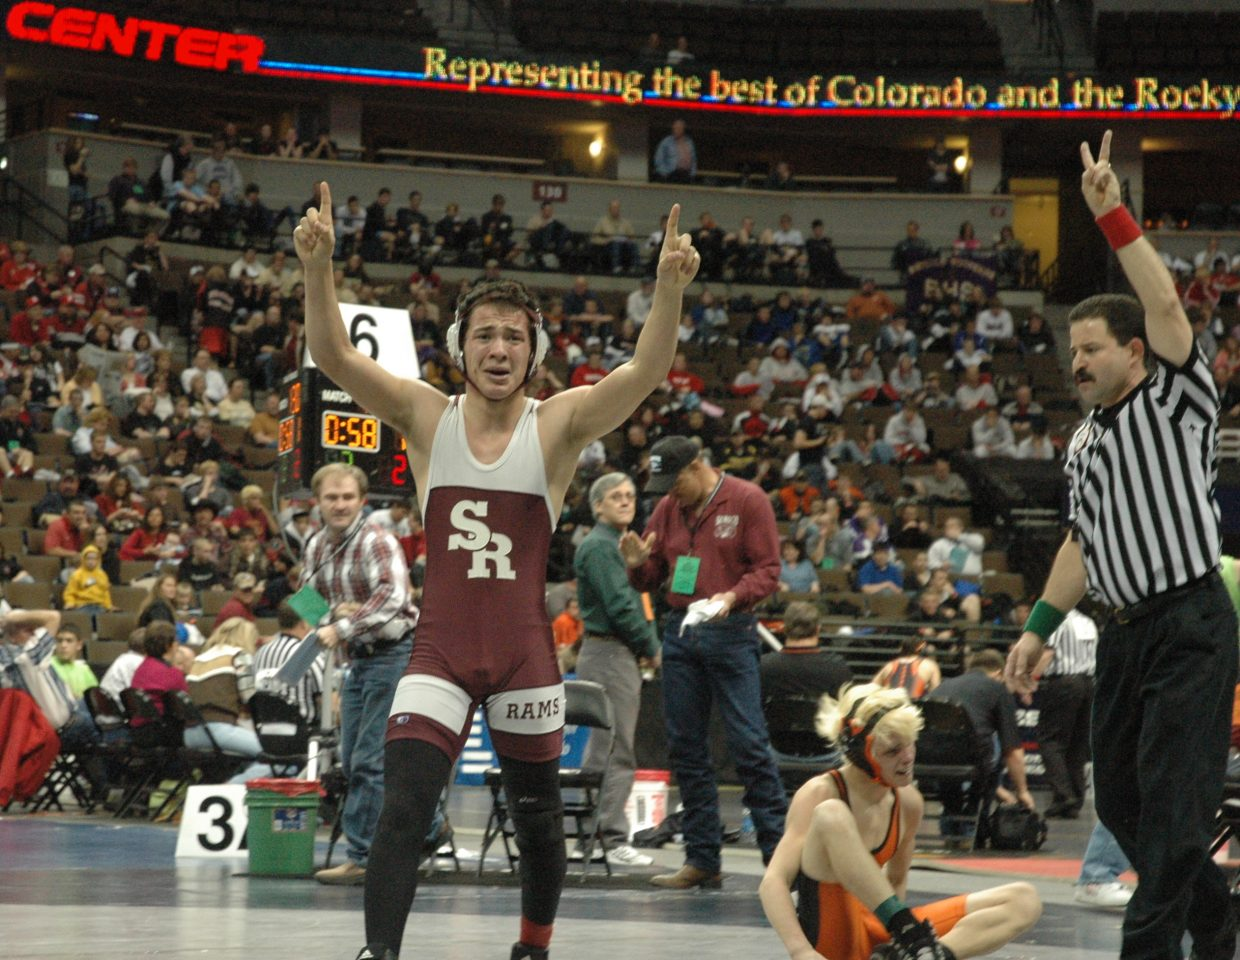 Soroco senior Levi Gonzales celebrates his overtime victory over Wiggins' Dillon McCombs (sitting, dejected and crying) in the 2A state championship 125-pound quarterfinals as the referee signifies Gonzales two winning takedown points.